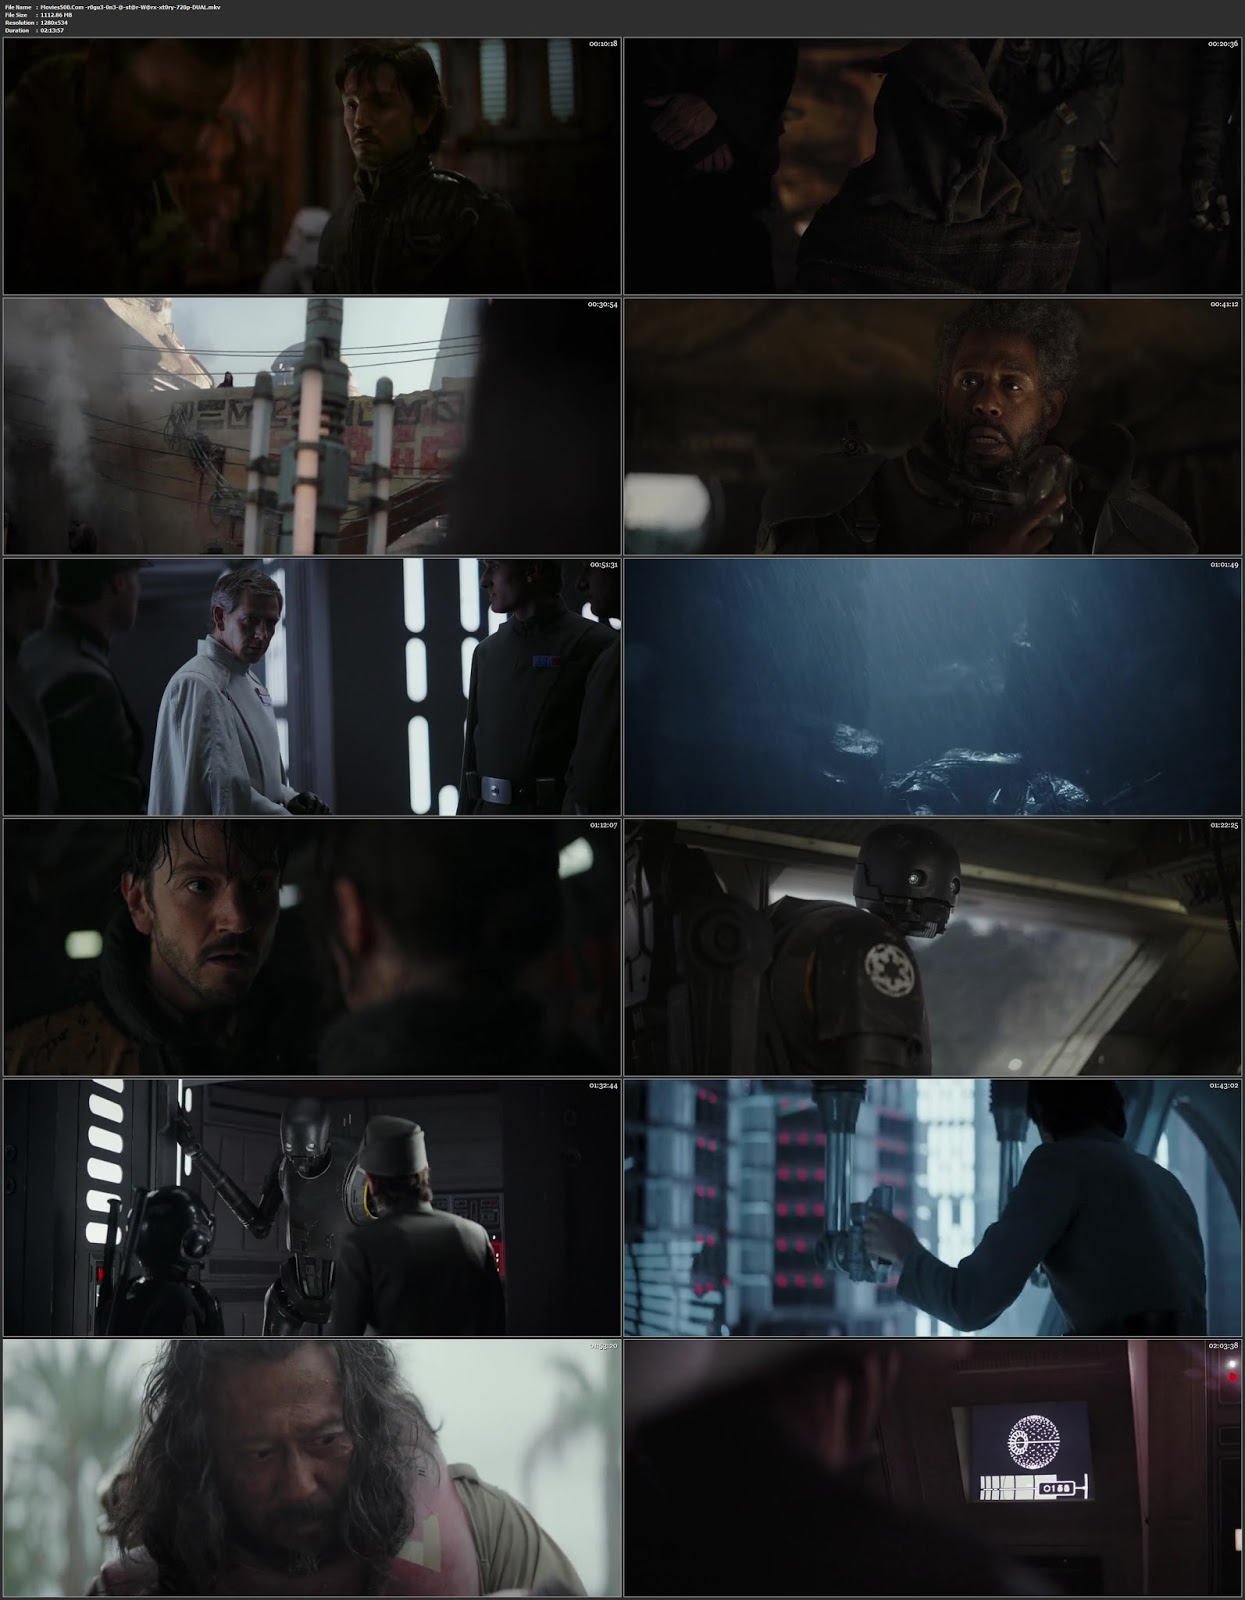 Rogue One A Star Wars Story 2016 Dual Audio Hindi BluRay 720p at 9966132.com